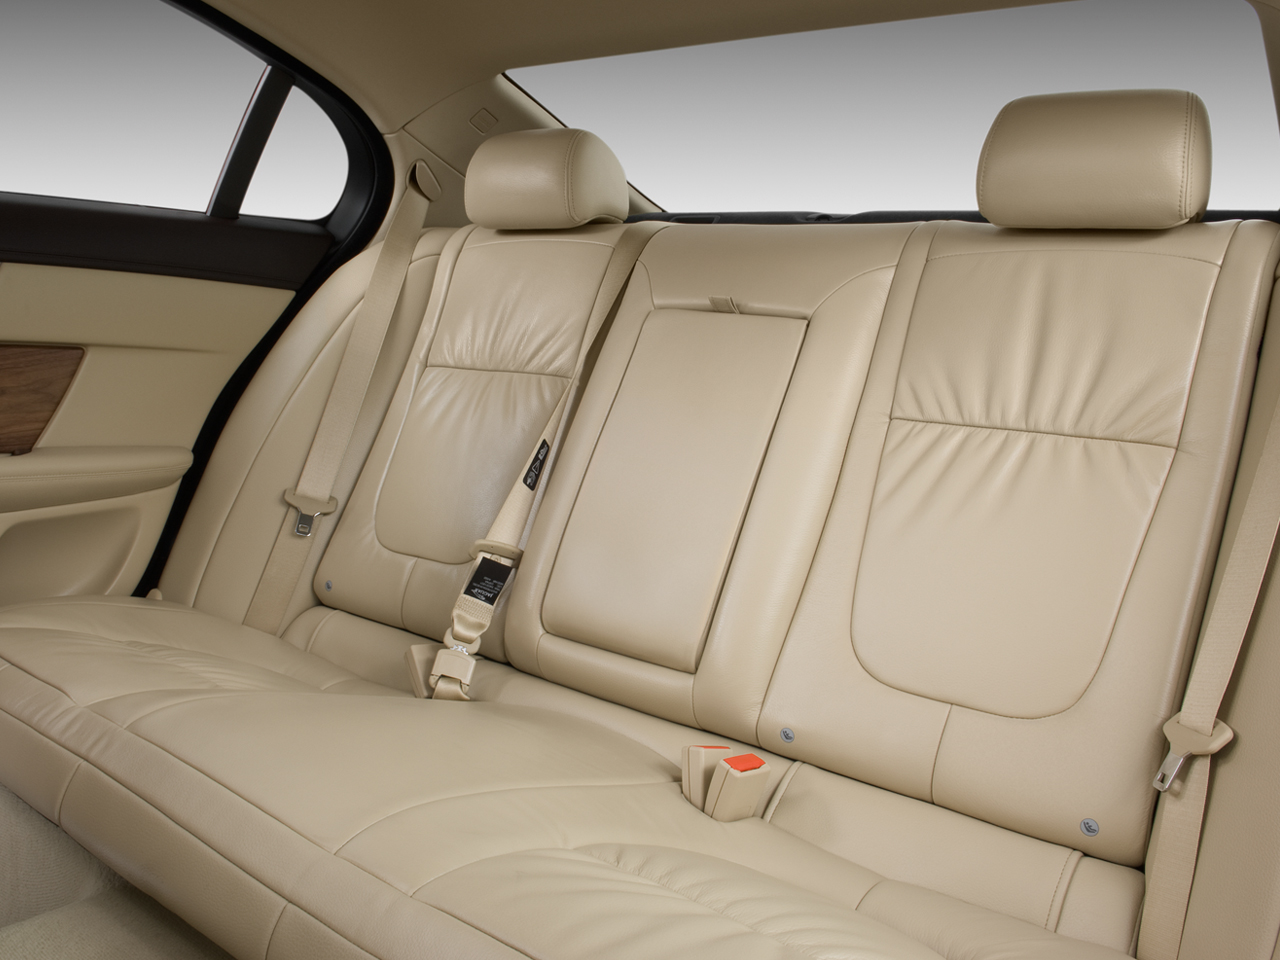 2009 Jaguar XF Supercharged - Latest News, Features, and